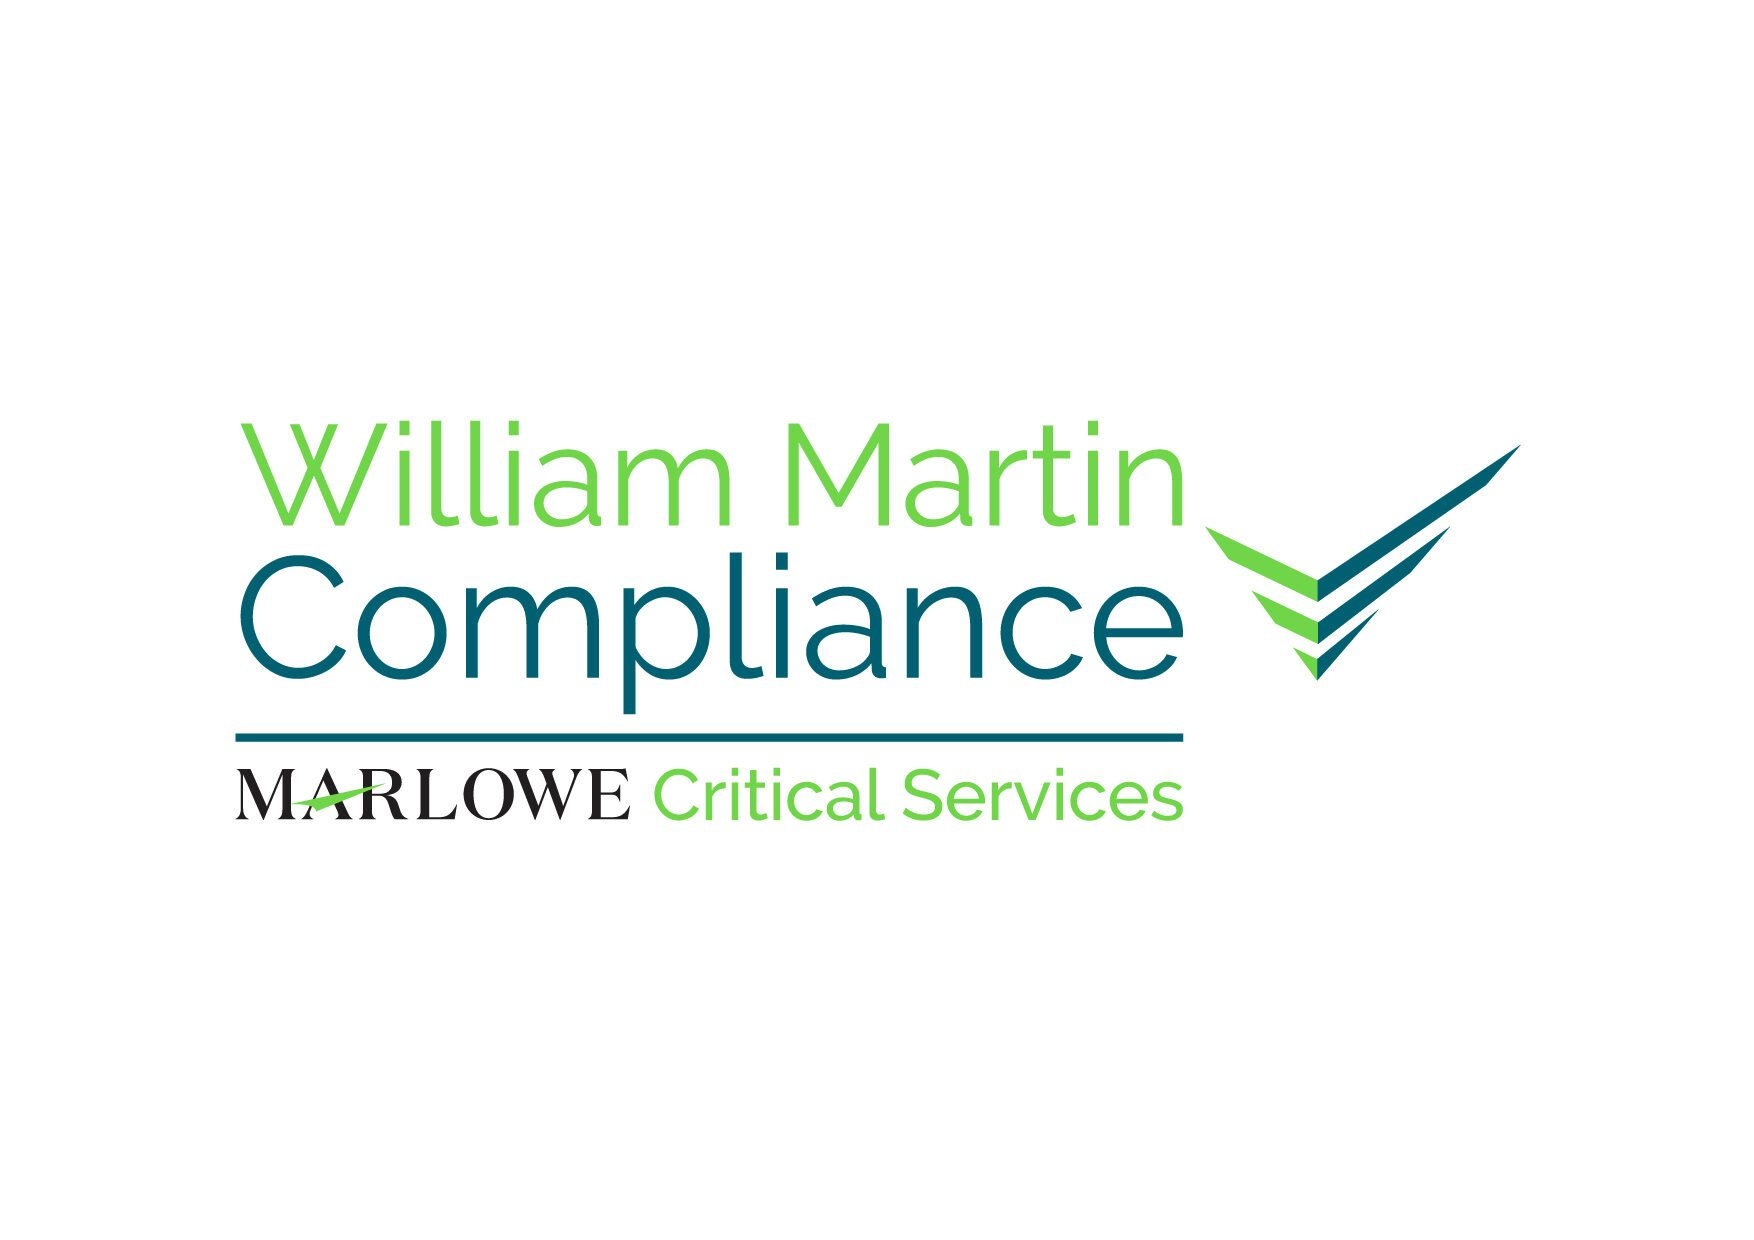 William Martin Compliance Logo